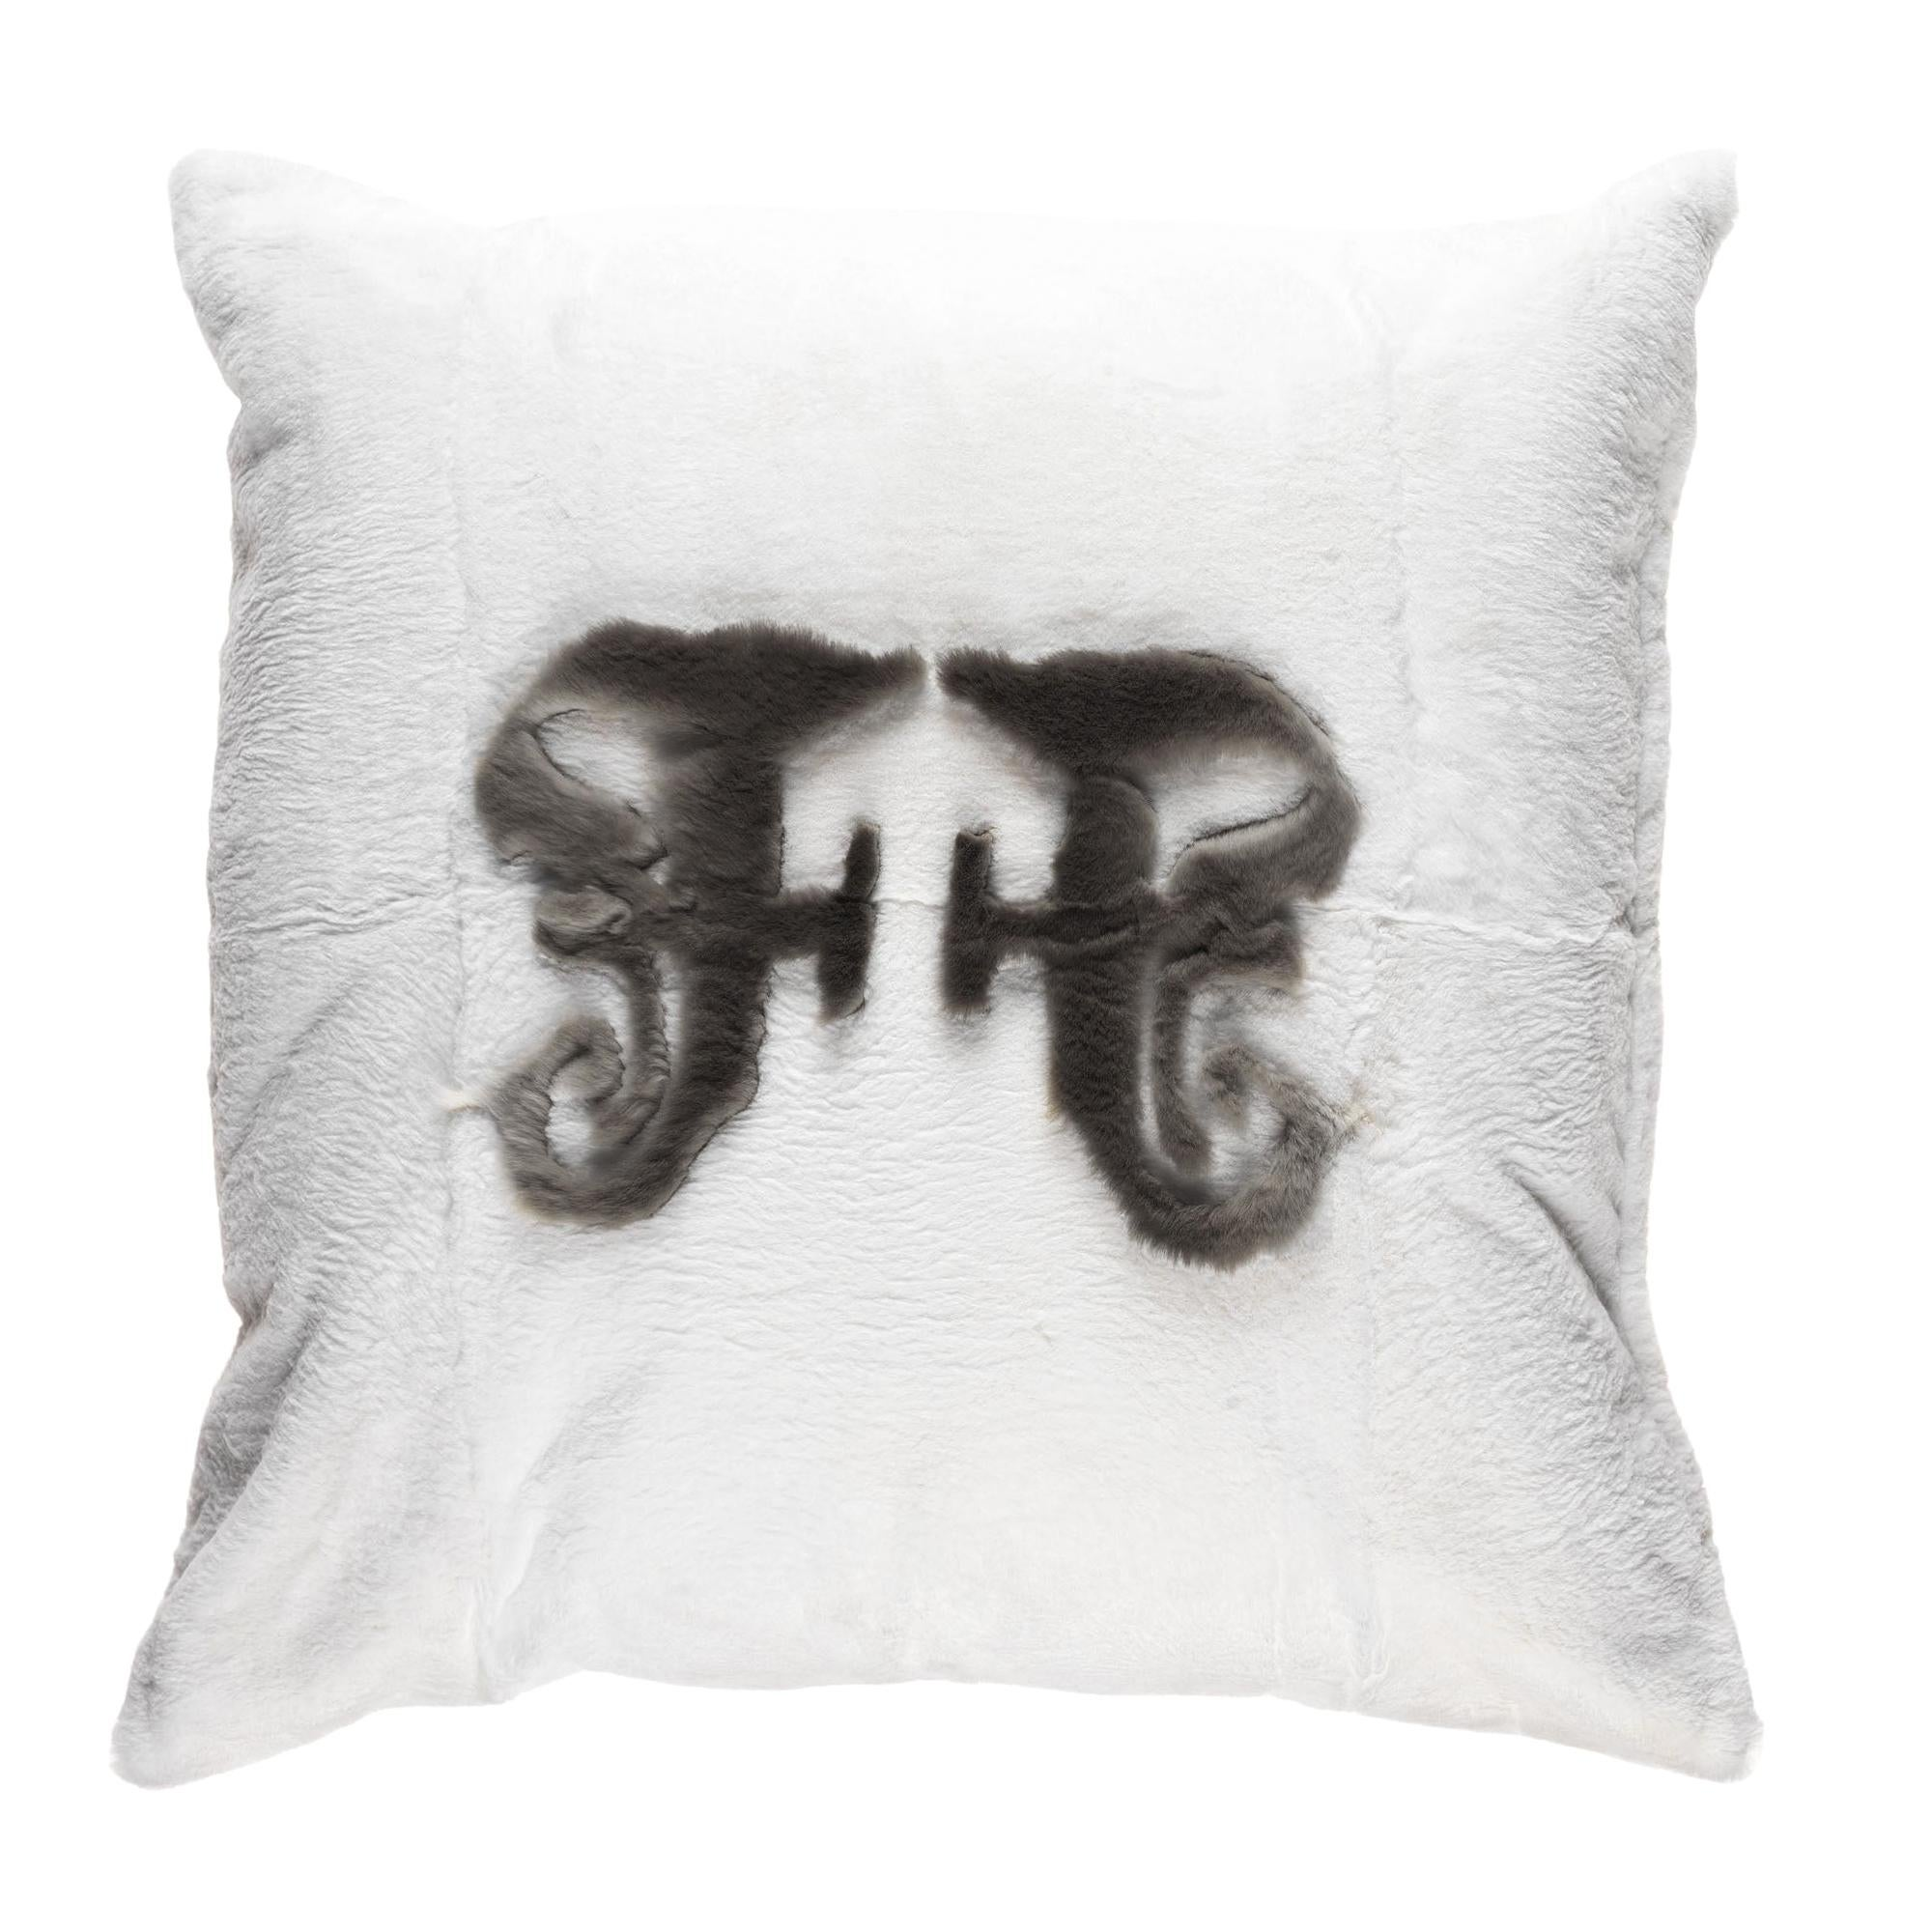 Gianfranco Ferré Home Kirah Gothic Grey Positive Cushion in Orylag and Velvet